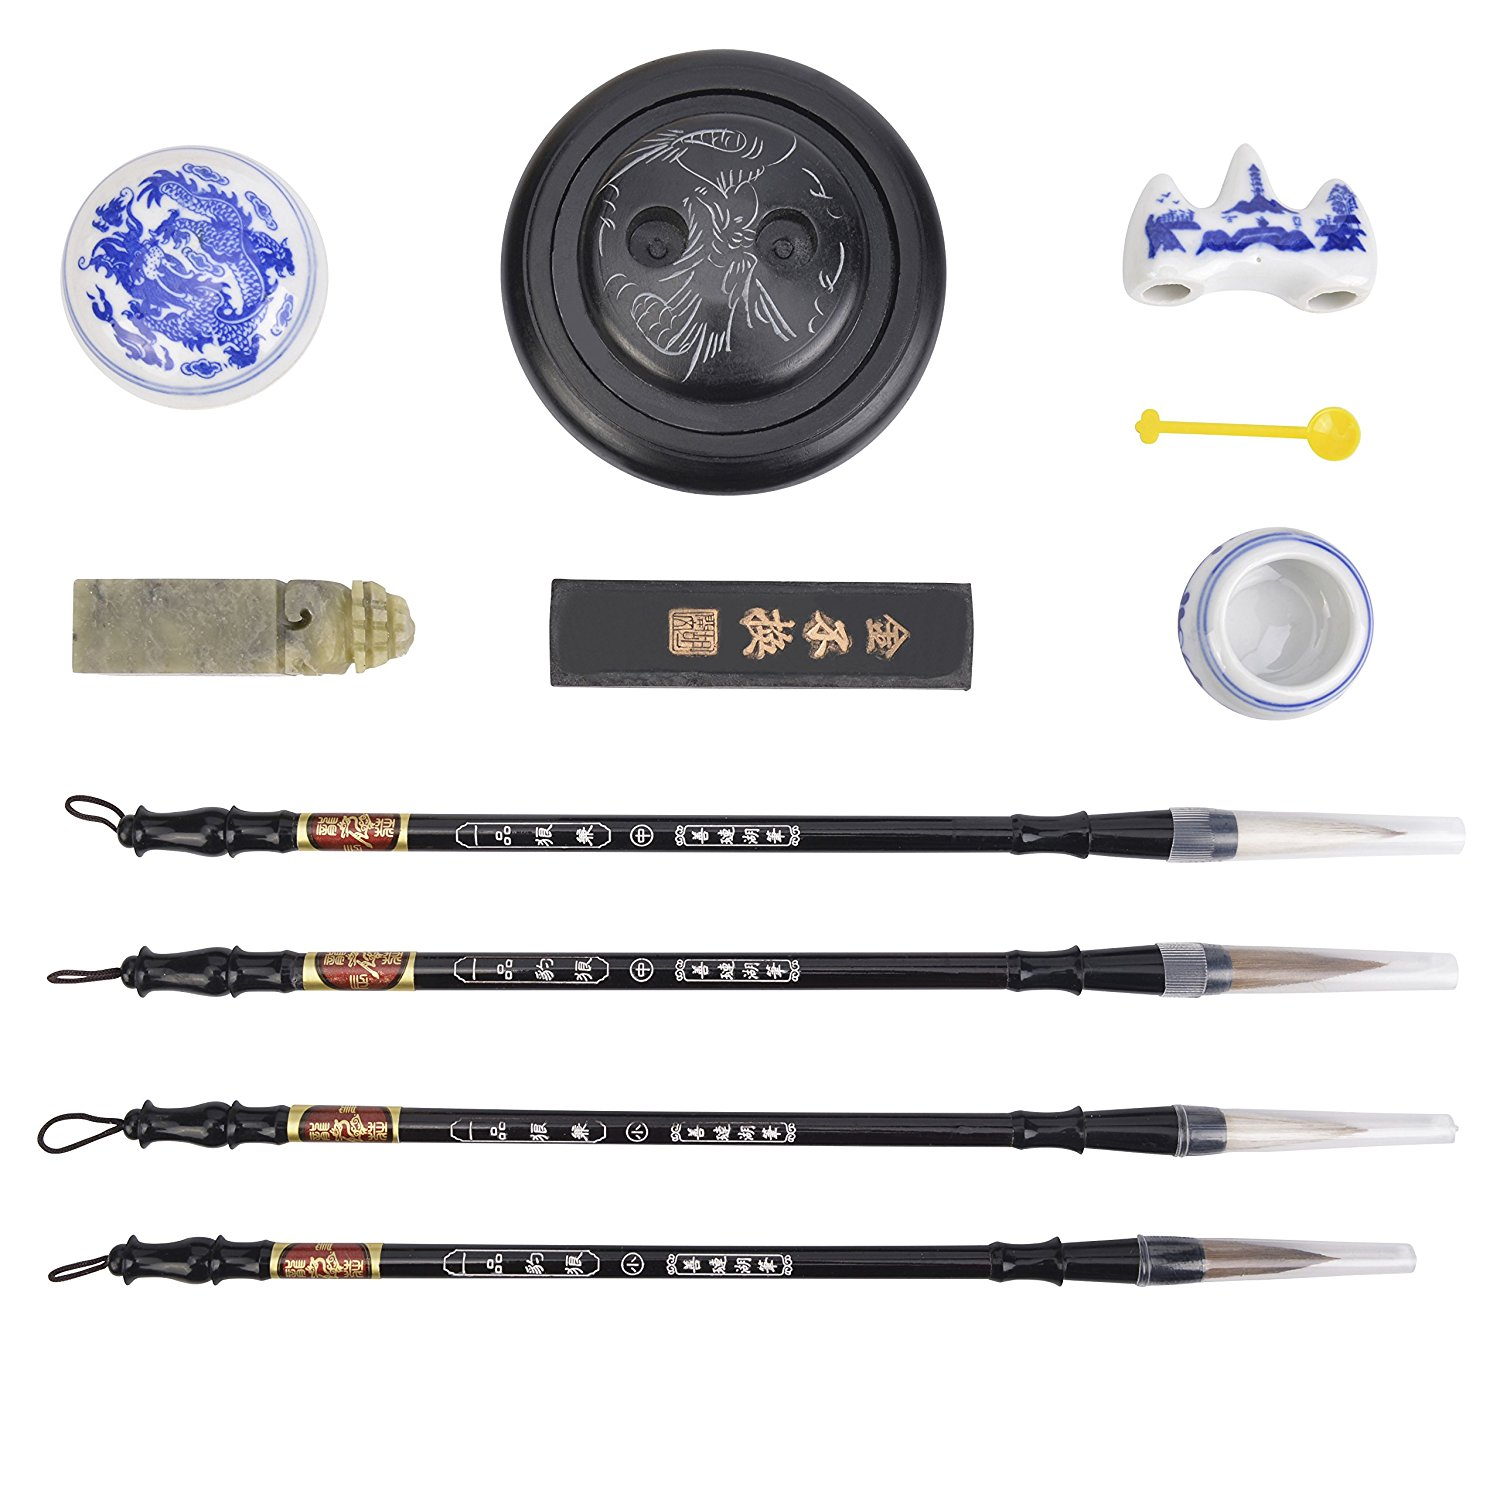 Calligraphy Sumi Brush Artecho Chinese Water-writing Calligraphy Gift Set Chinese Brushes Rewritable Set 10 Pcs for Beginners